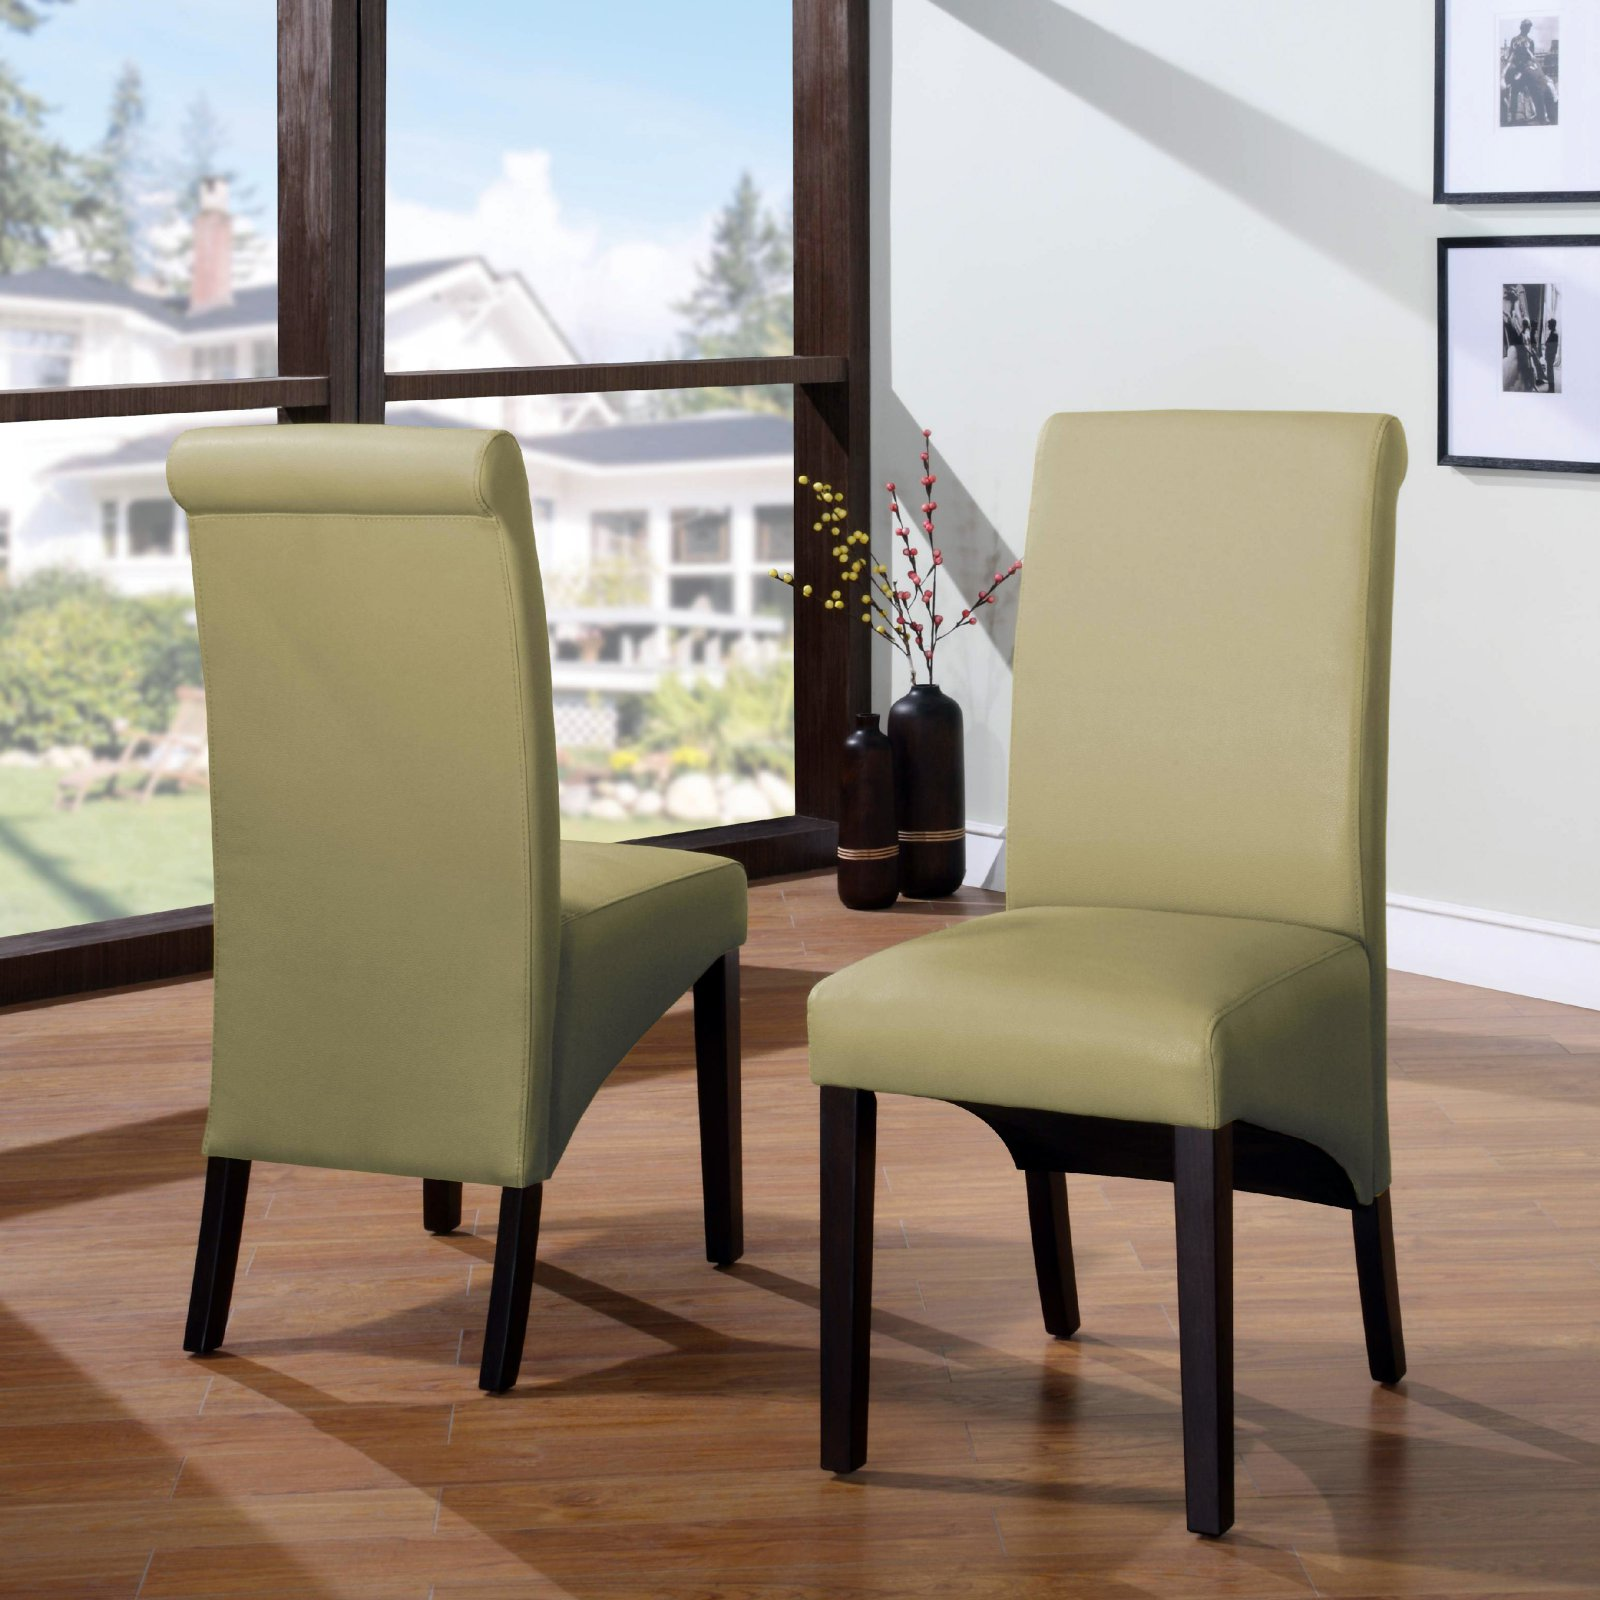 Modus Cosmo Sleigh Back Chair Set of 2 by Modus Furniture